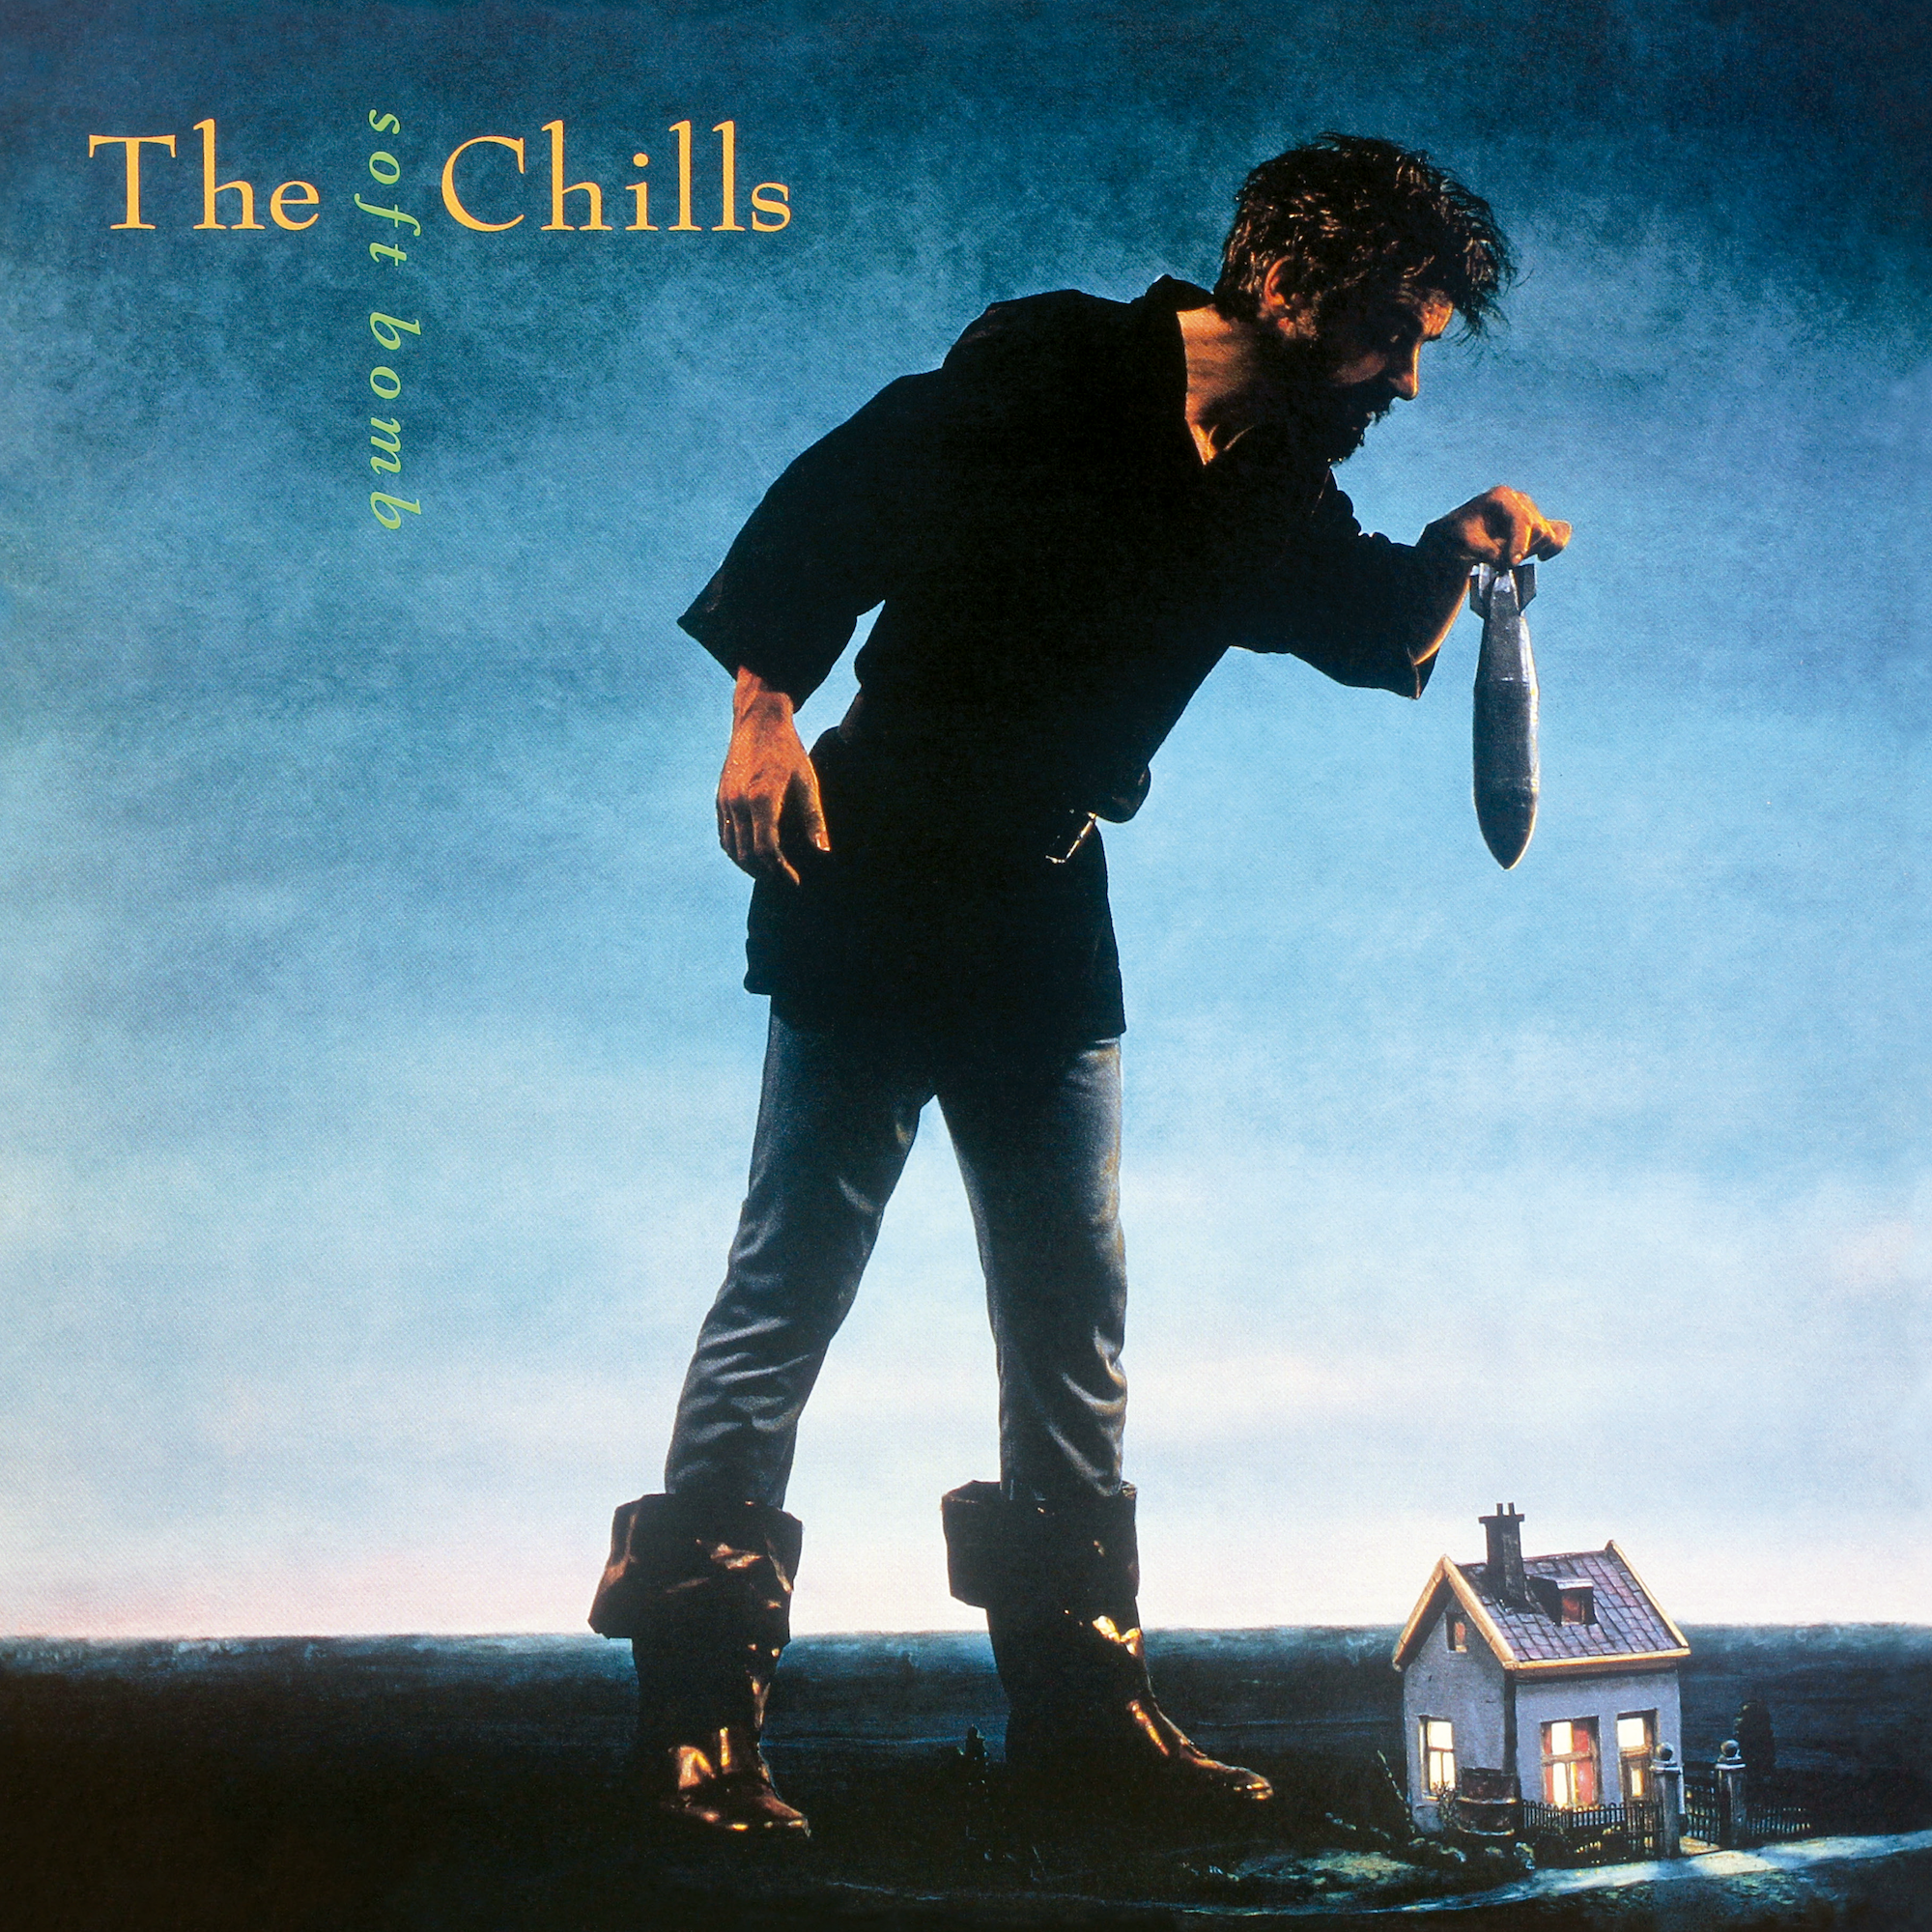 Chills, The - Soft Bomb (Reissue) (2020)